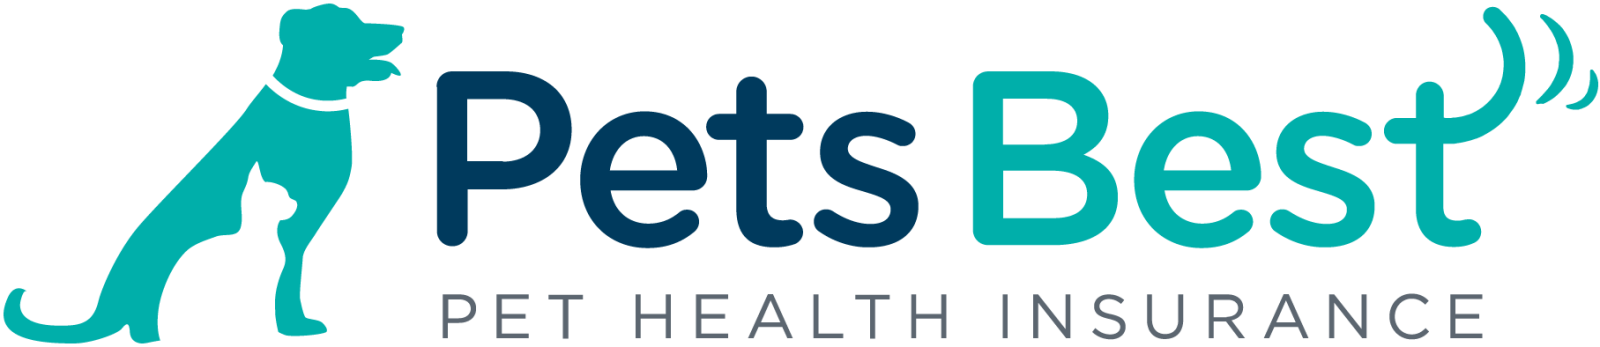 Pets Best - Pet Health Insurance